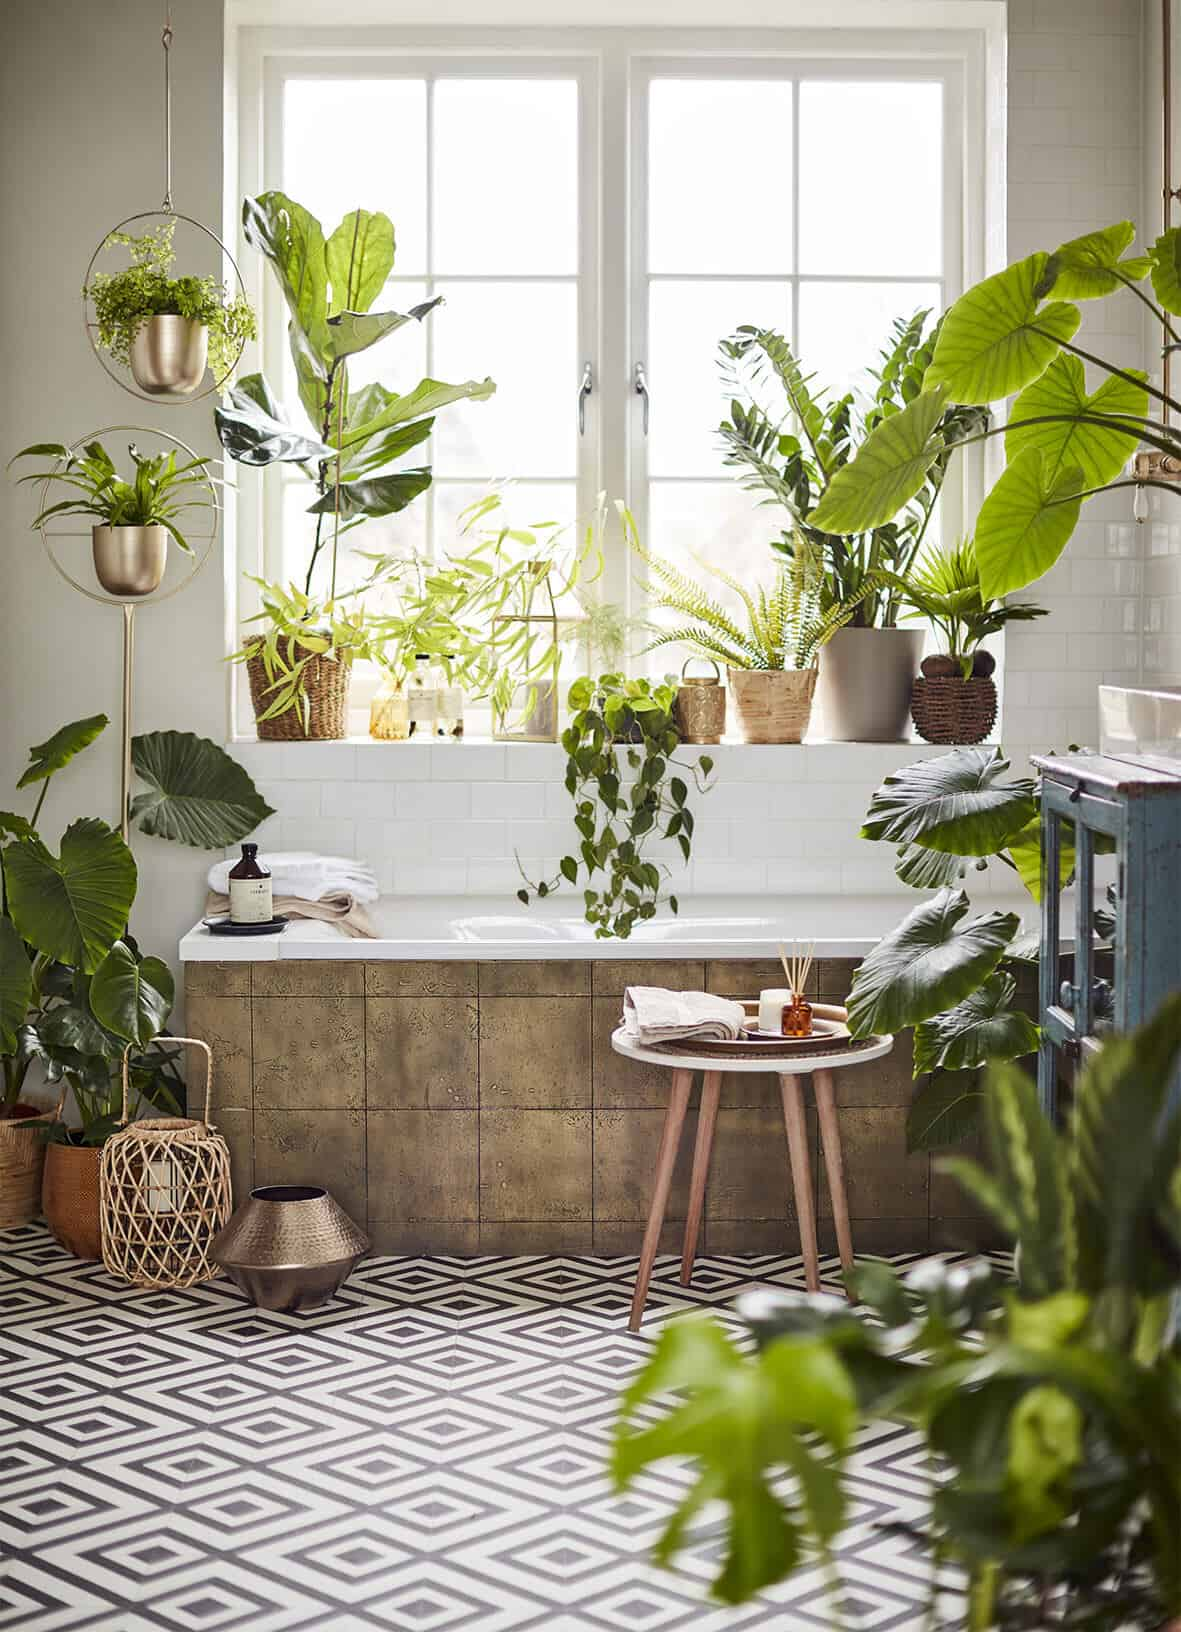 Bringing Natural Elements into the Home. A bathroom packed full of plants